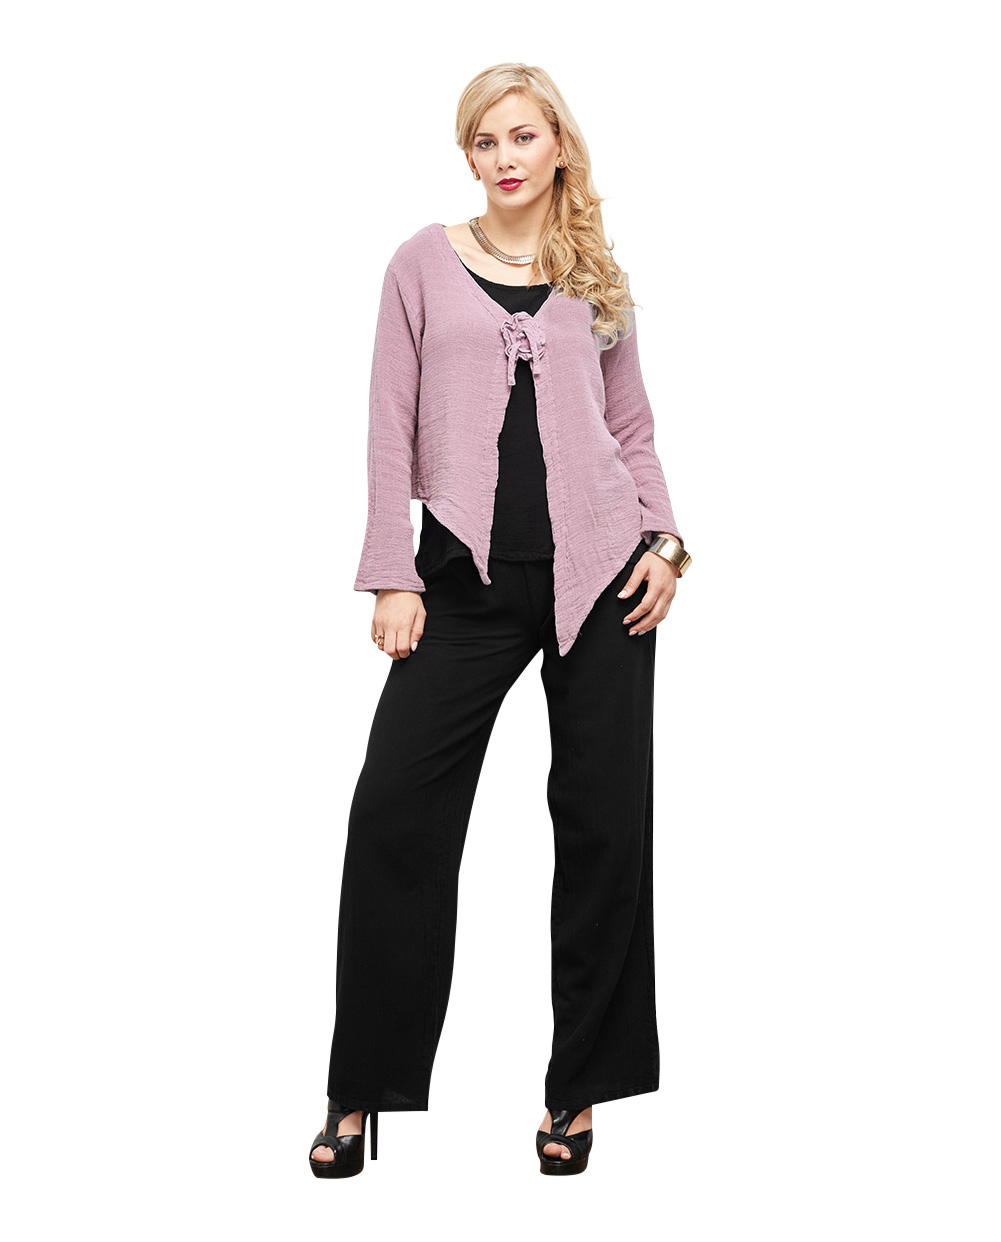 OMG - A long sleeve button less cotton gauze jacket that has point detail at the hemline and secured together by a attractive flower design.